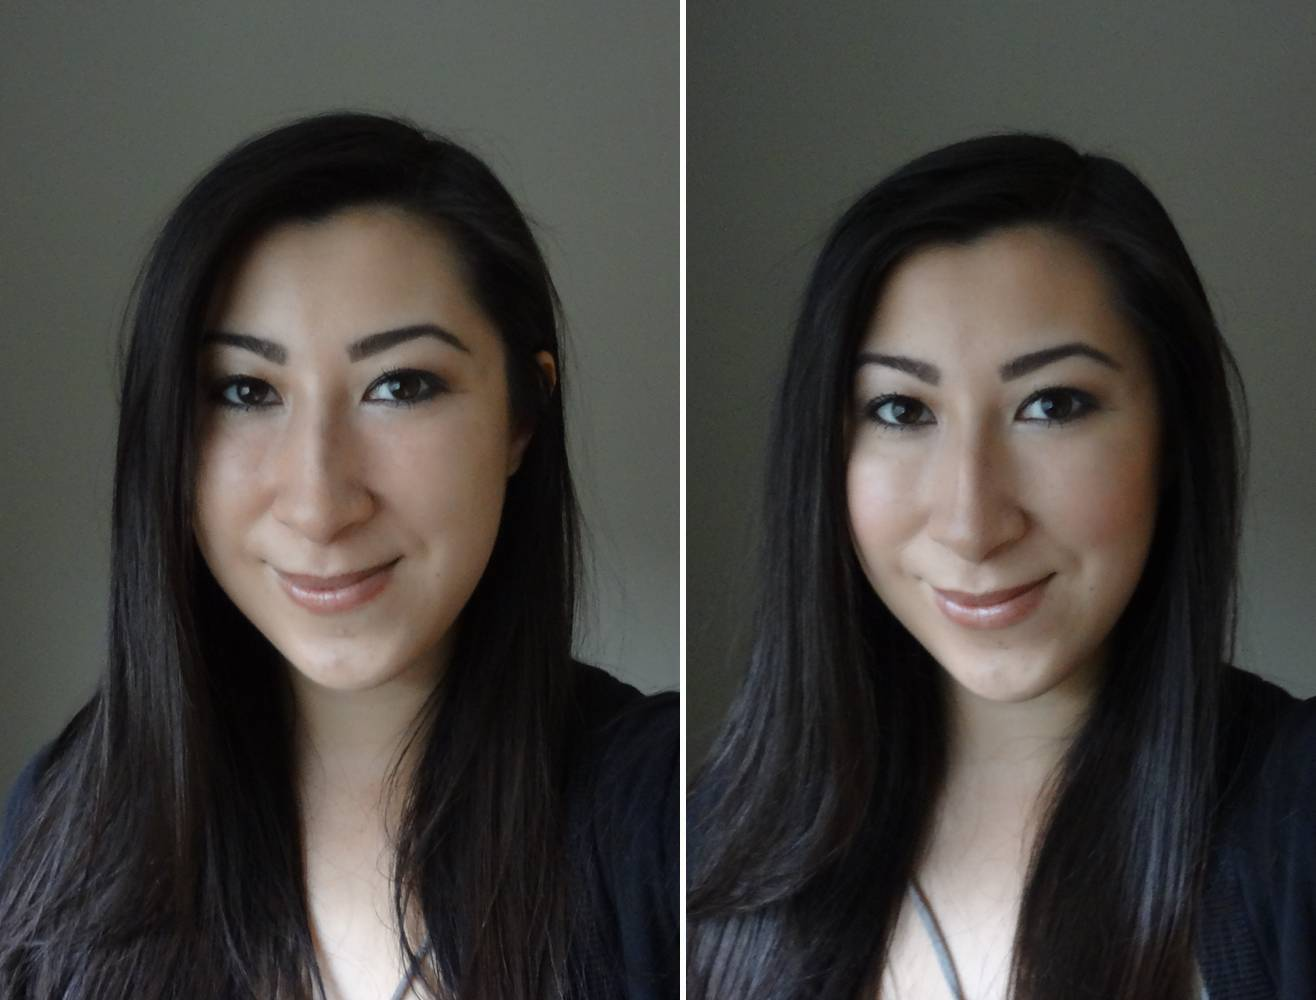 Before and after of Highlight and Contouring